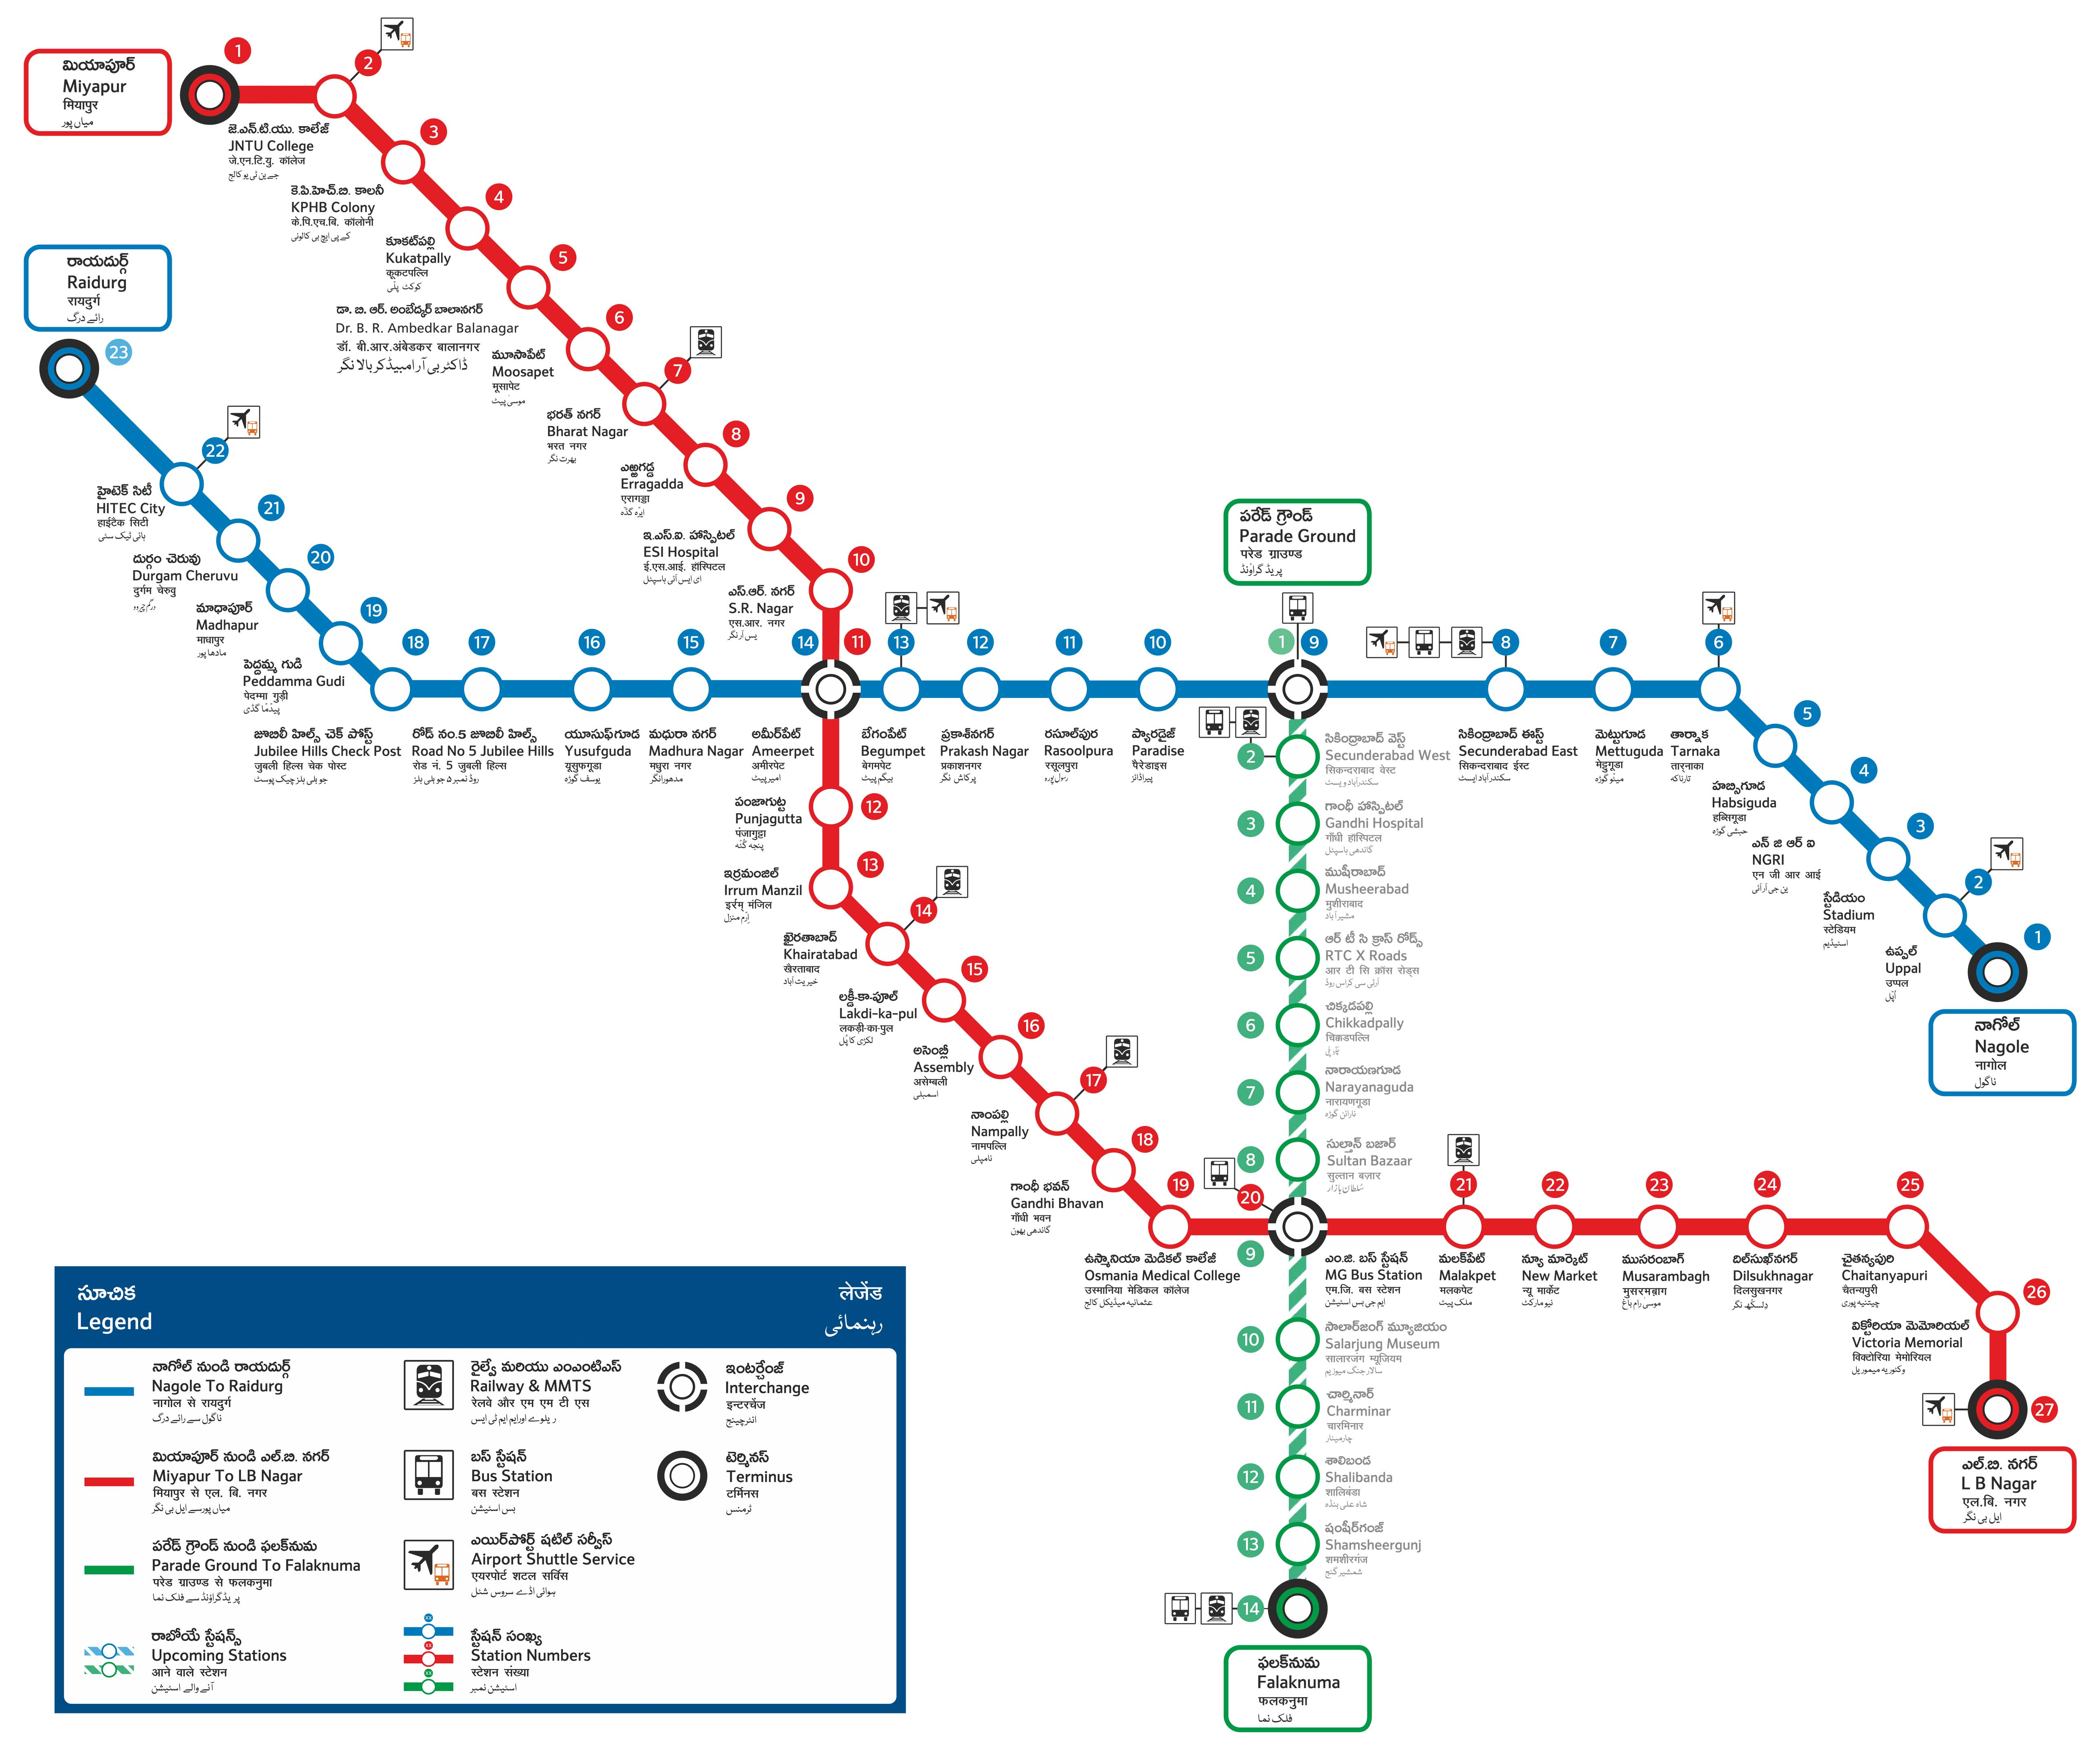 Hyderabad Metro - Wikipedia on l train line map, new york f train map, mta r train map, new york train system map, bronx 5 train map, mta f train map, n r train map, mta e train map, ny city train map, subway e train map, new york city train map, l train subway map,